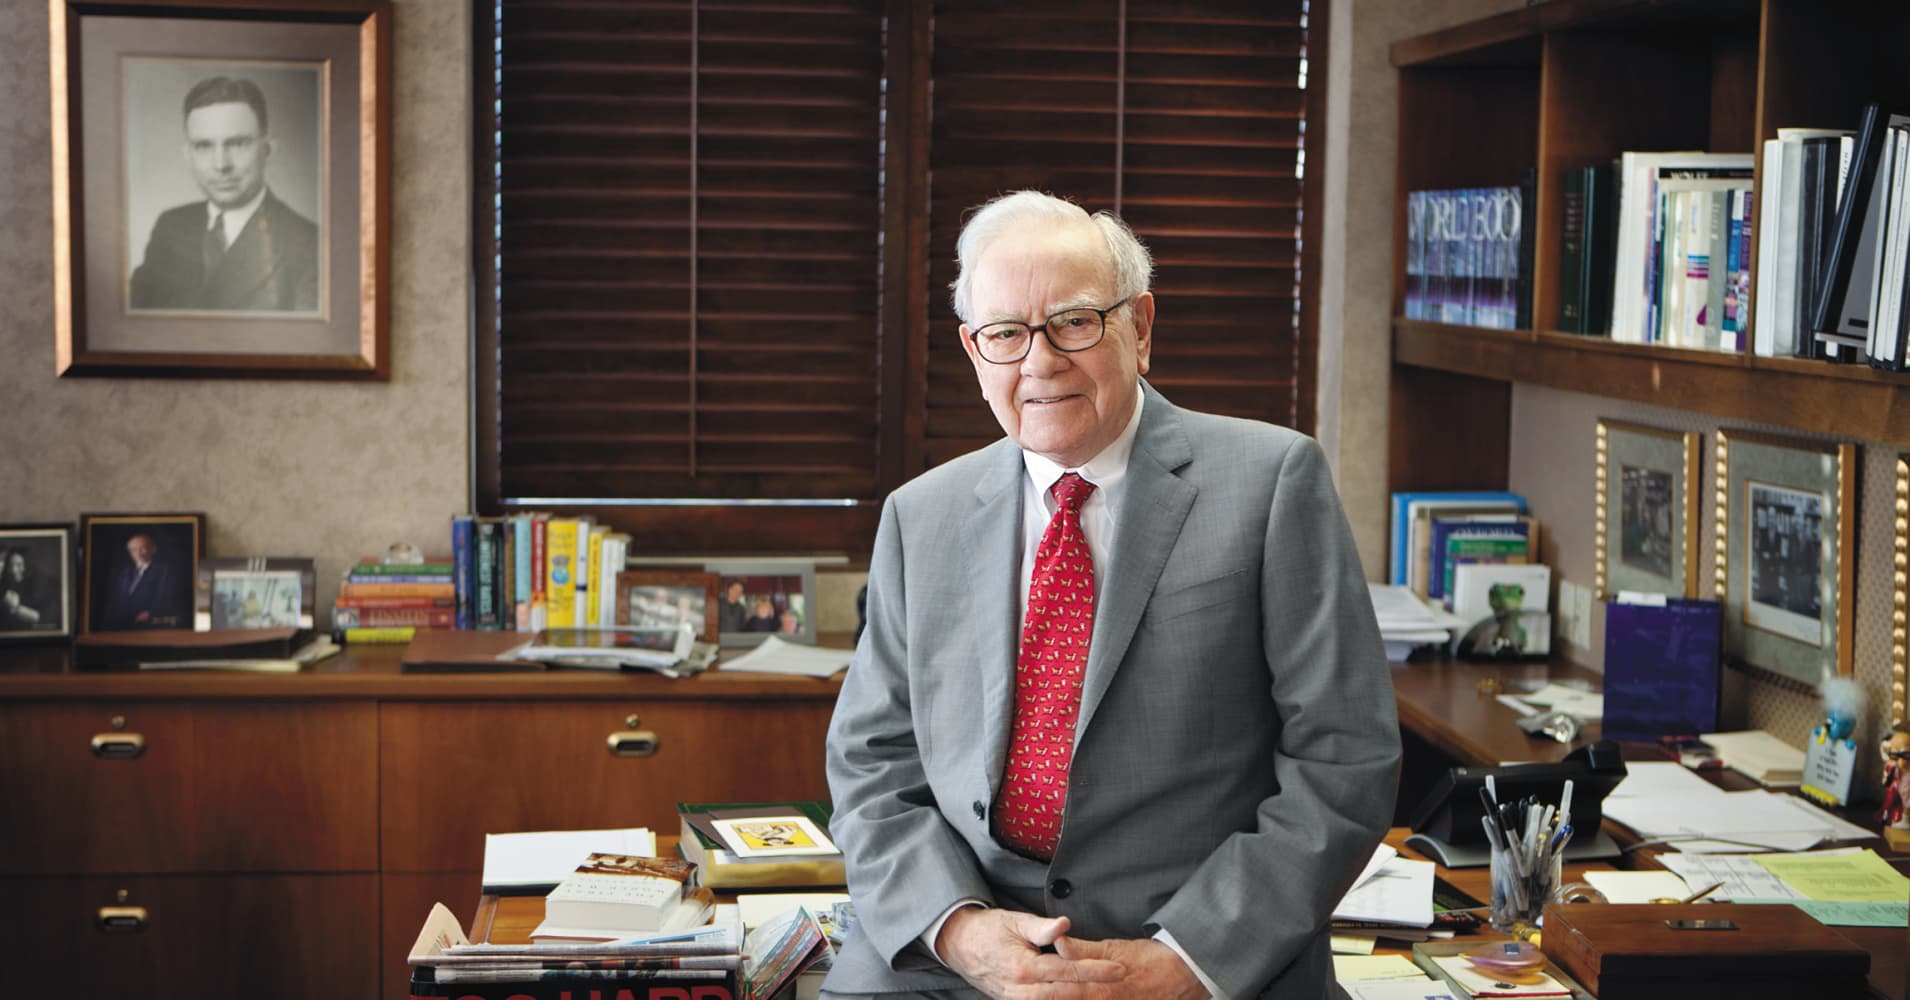 Billionaire Warren Buffett: 'This $100 college course gave me the most important degree I have'—and it's why I'm successful today